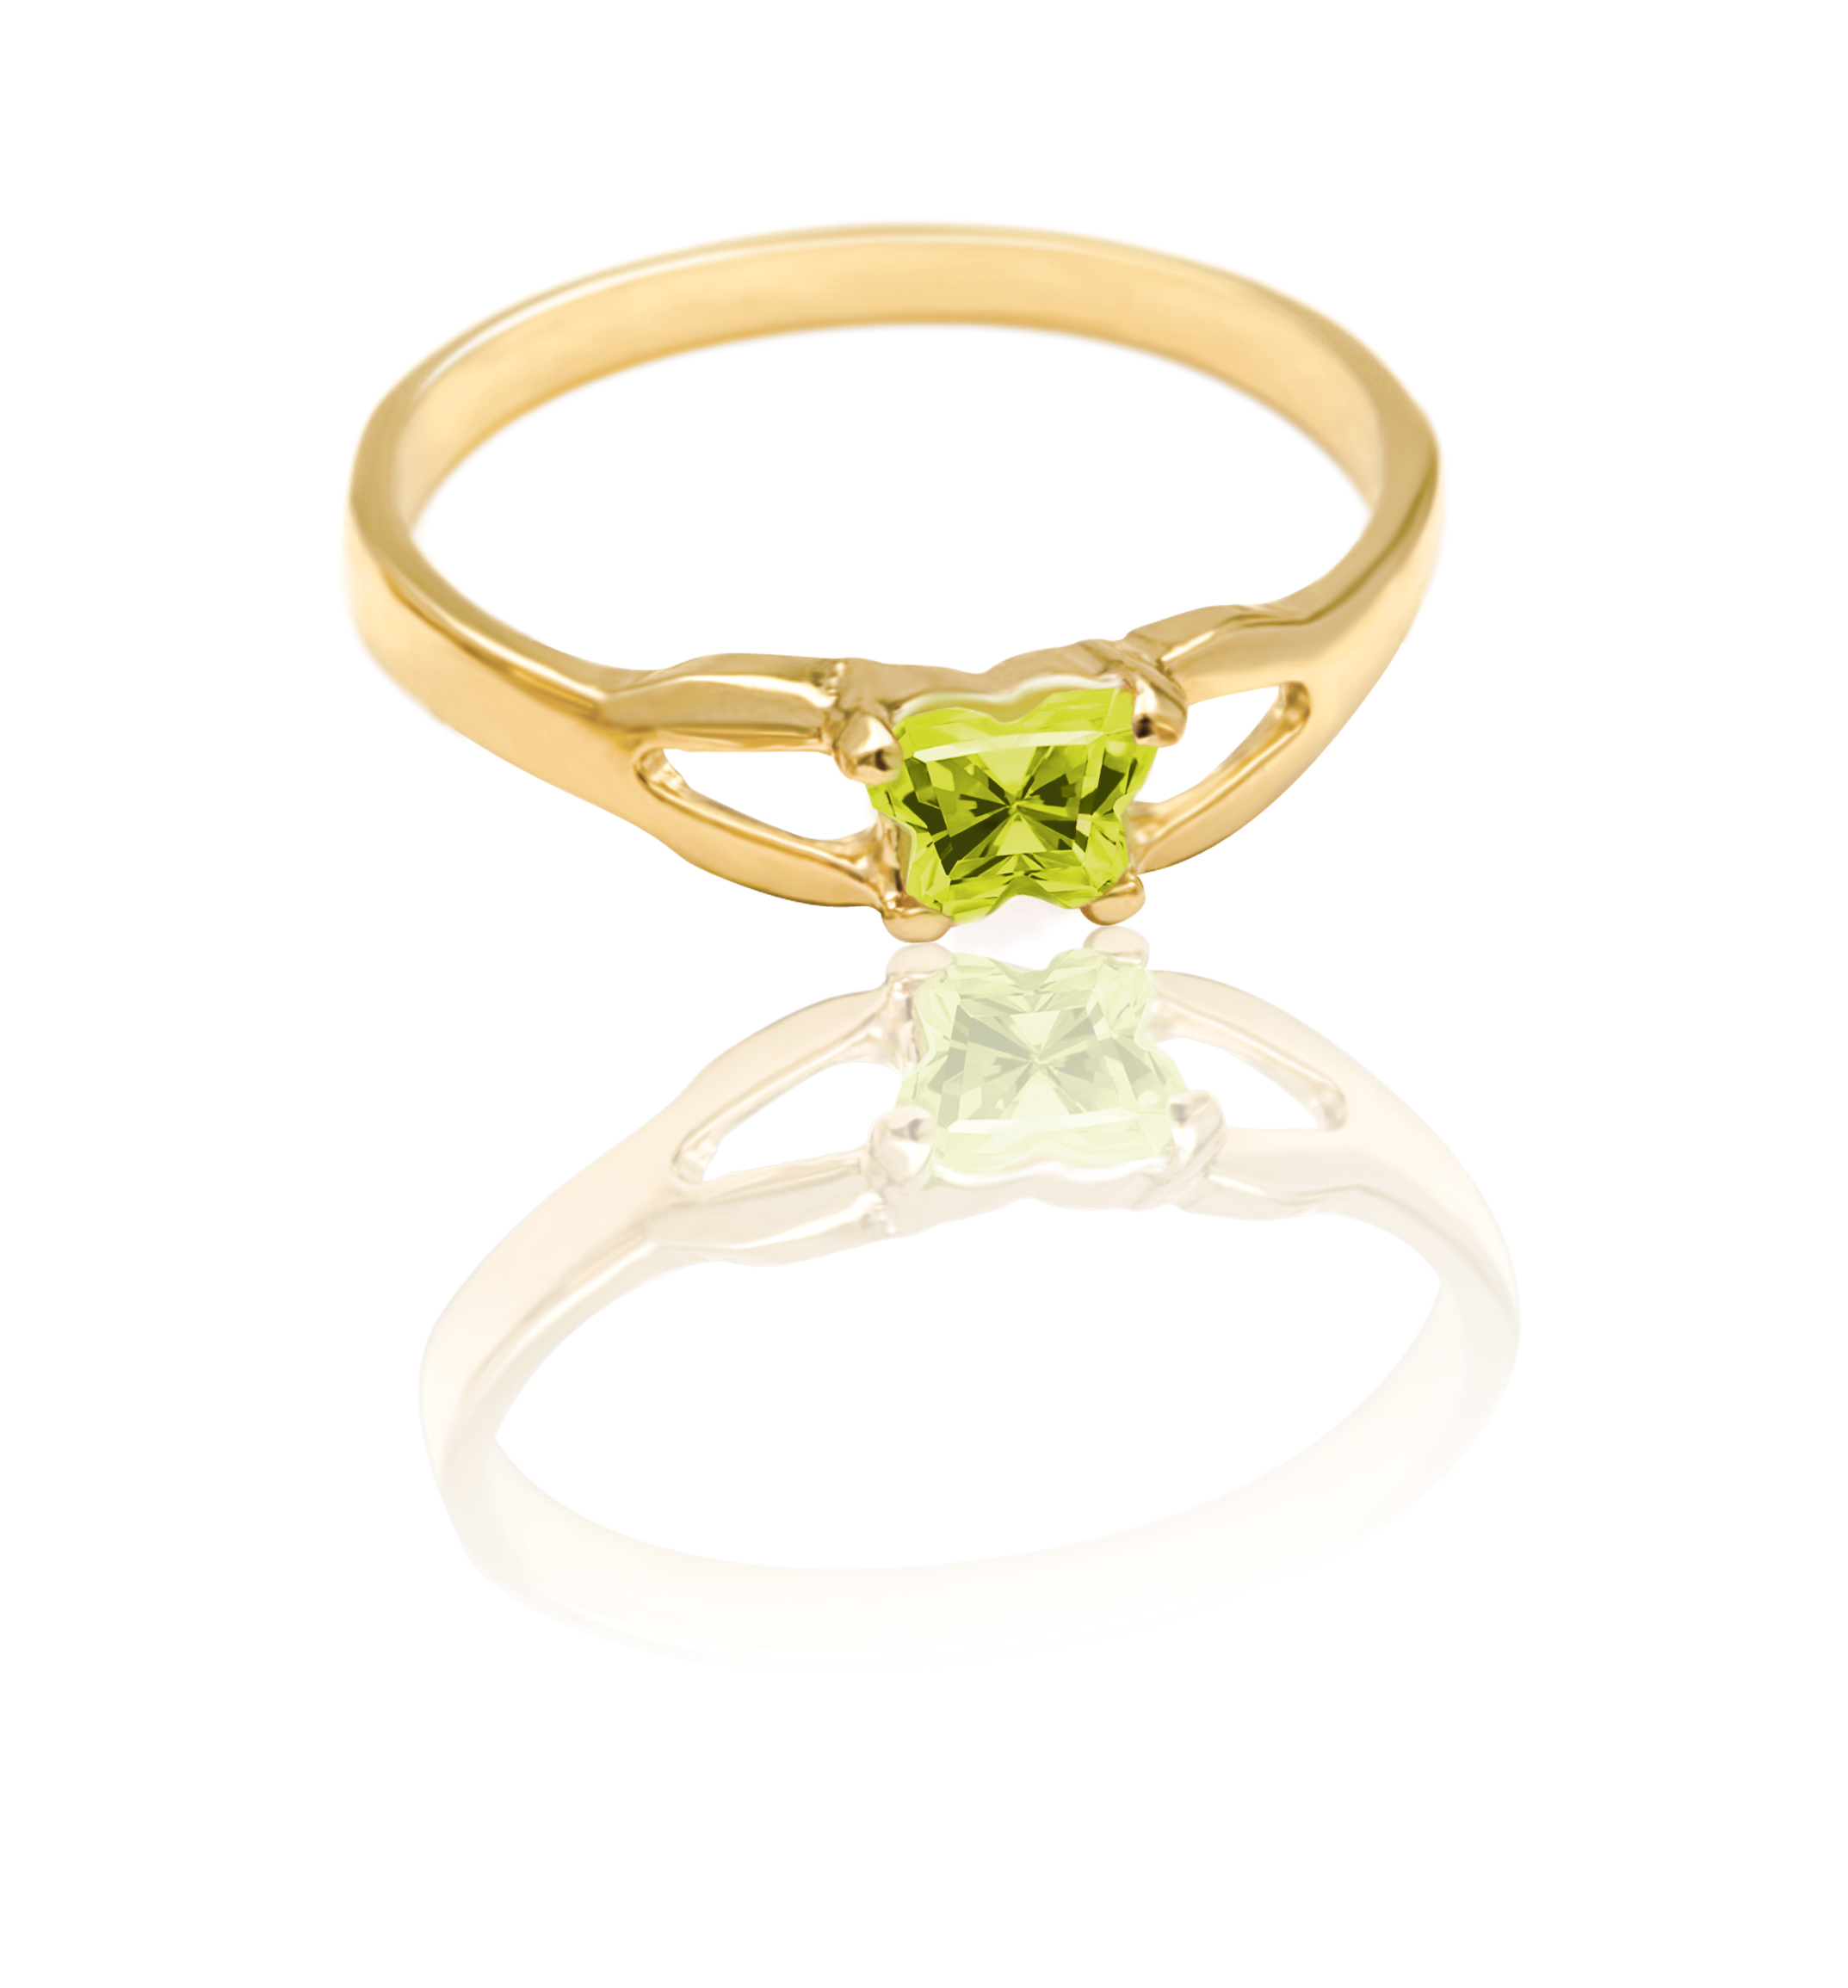 ring for child - 10K yellow Gold & Yellowish-green cubic zirconia (month of August)*